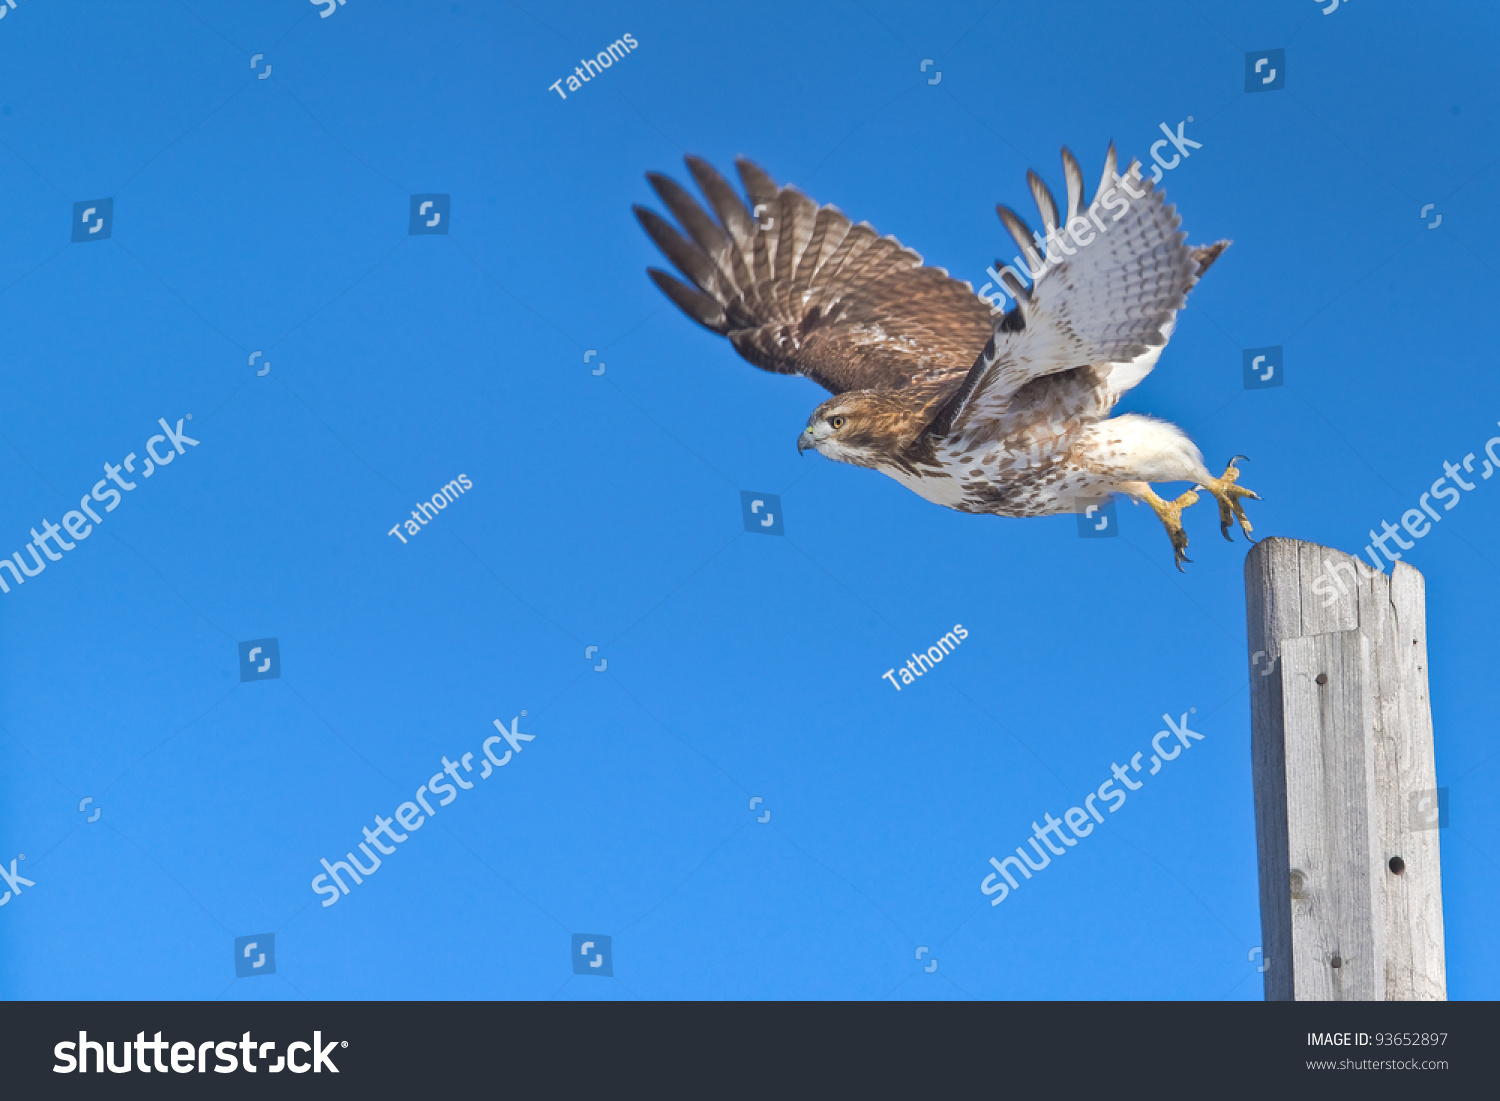 stock-photo-red-tailed-hawk-in-flight-ch